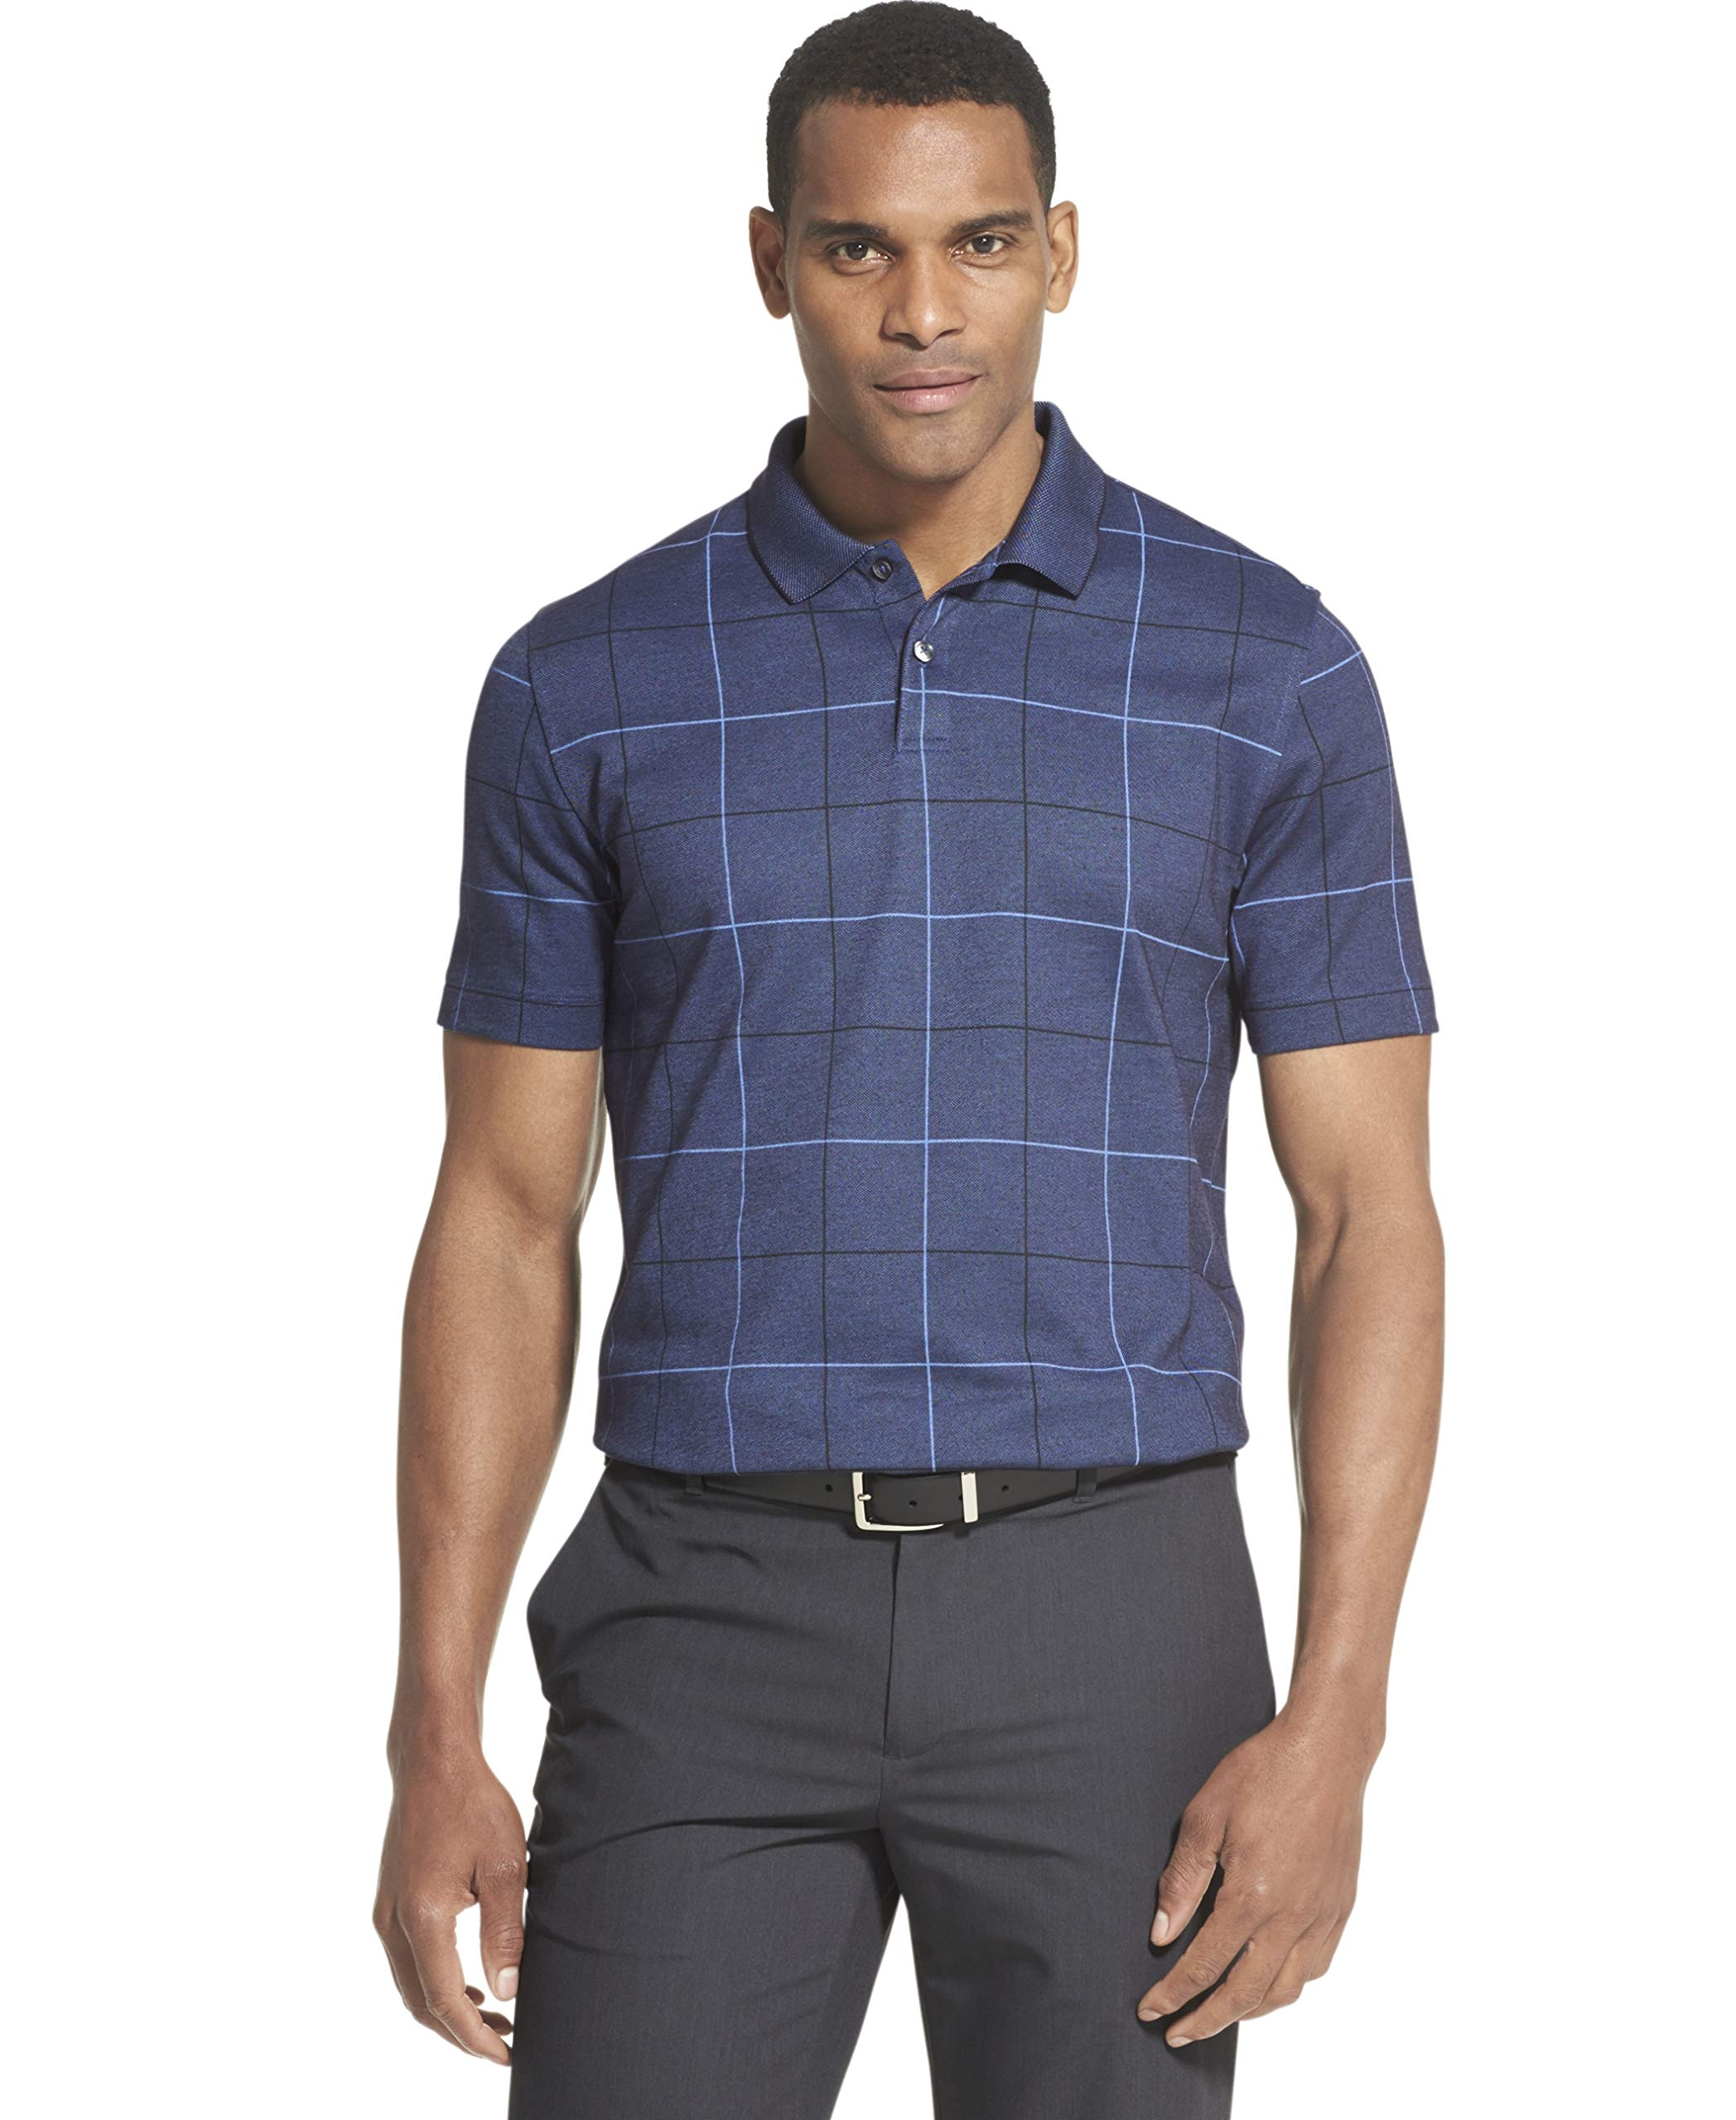 Van Heusen Men's Big and Tall Flex Short Sleeve Stretch Windowpane Polo Shirt, Blue Underground, 2X-Large